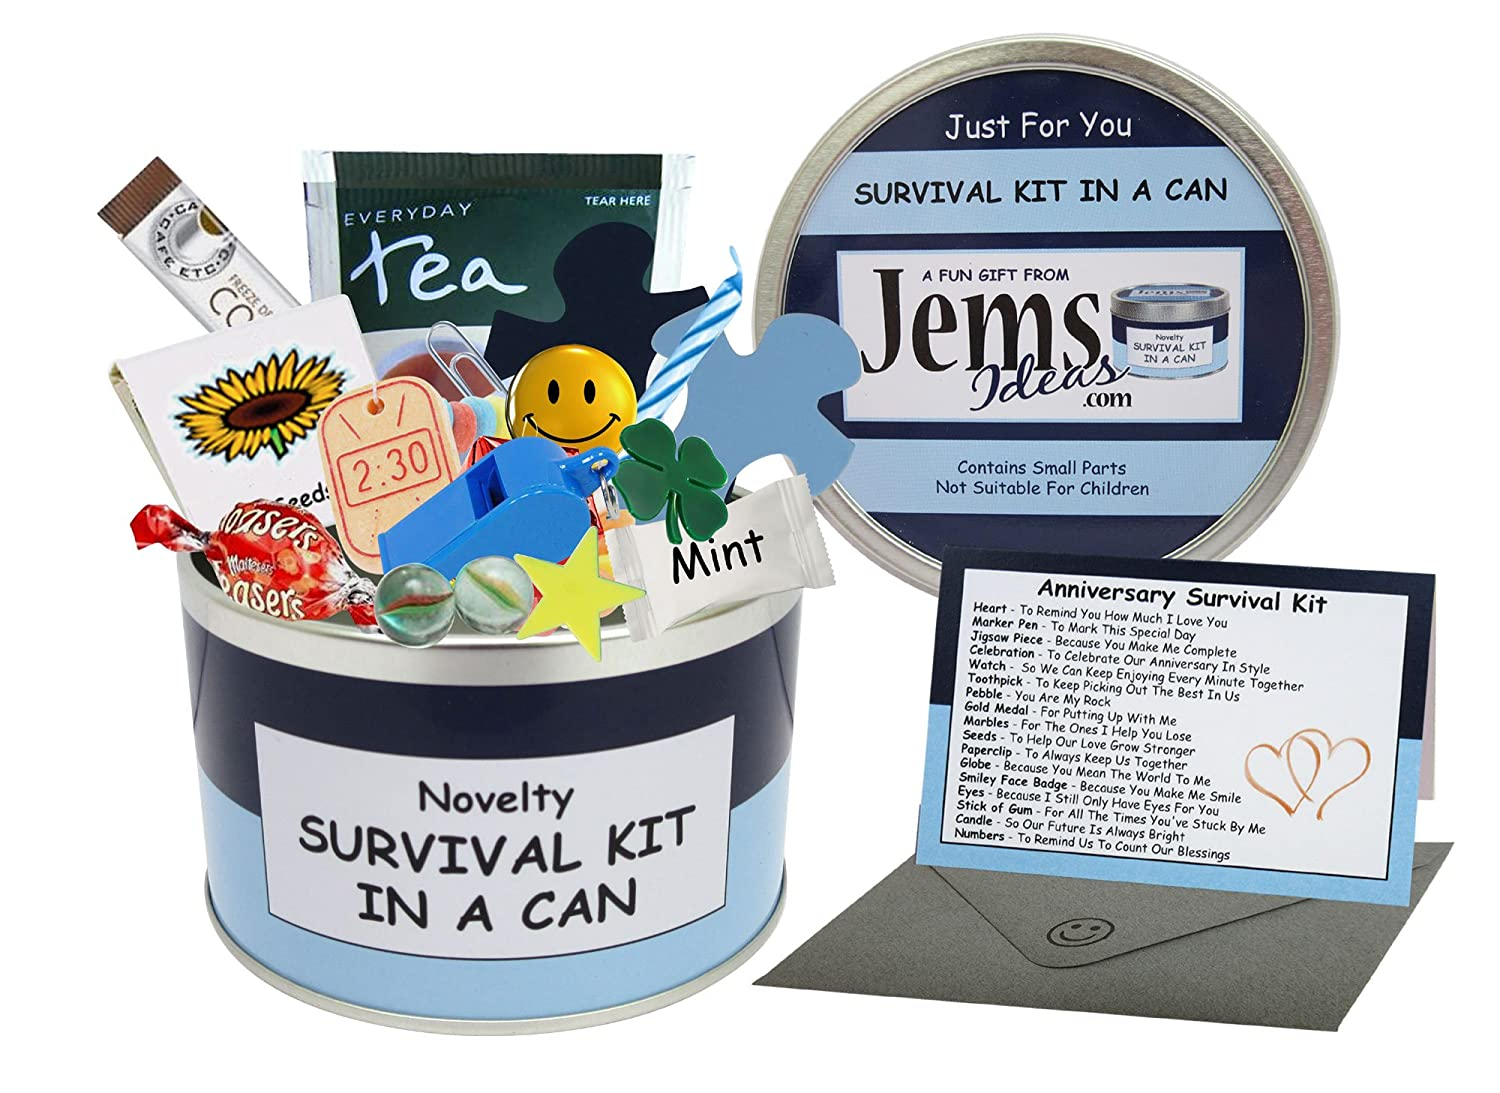 anniversary survival kit in a can humorous novelty gift male